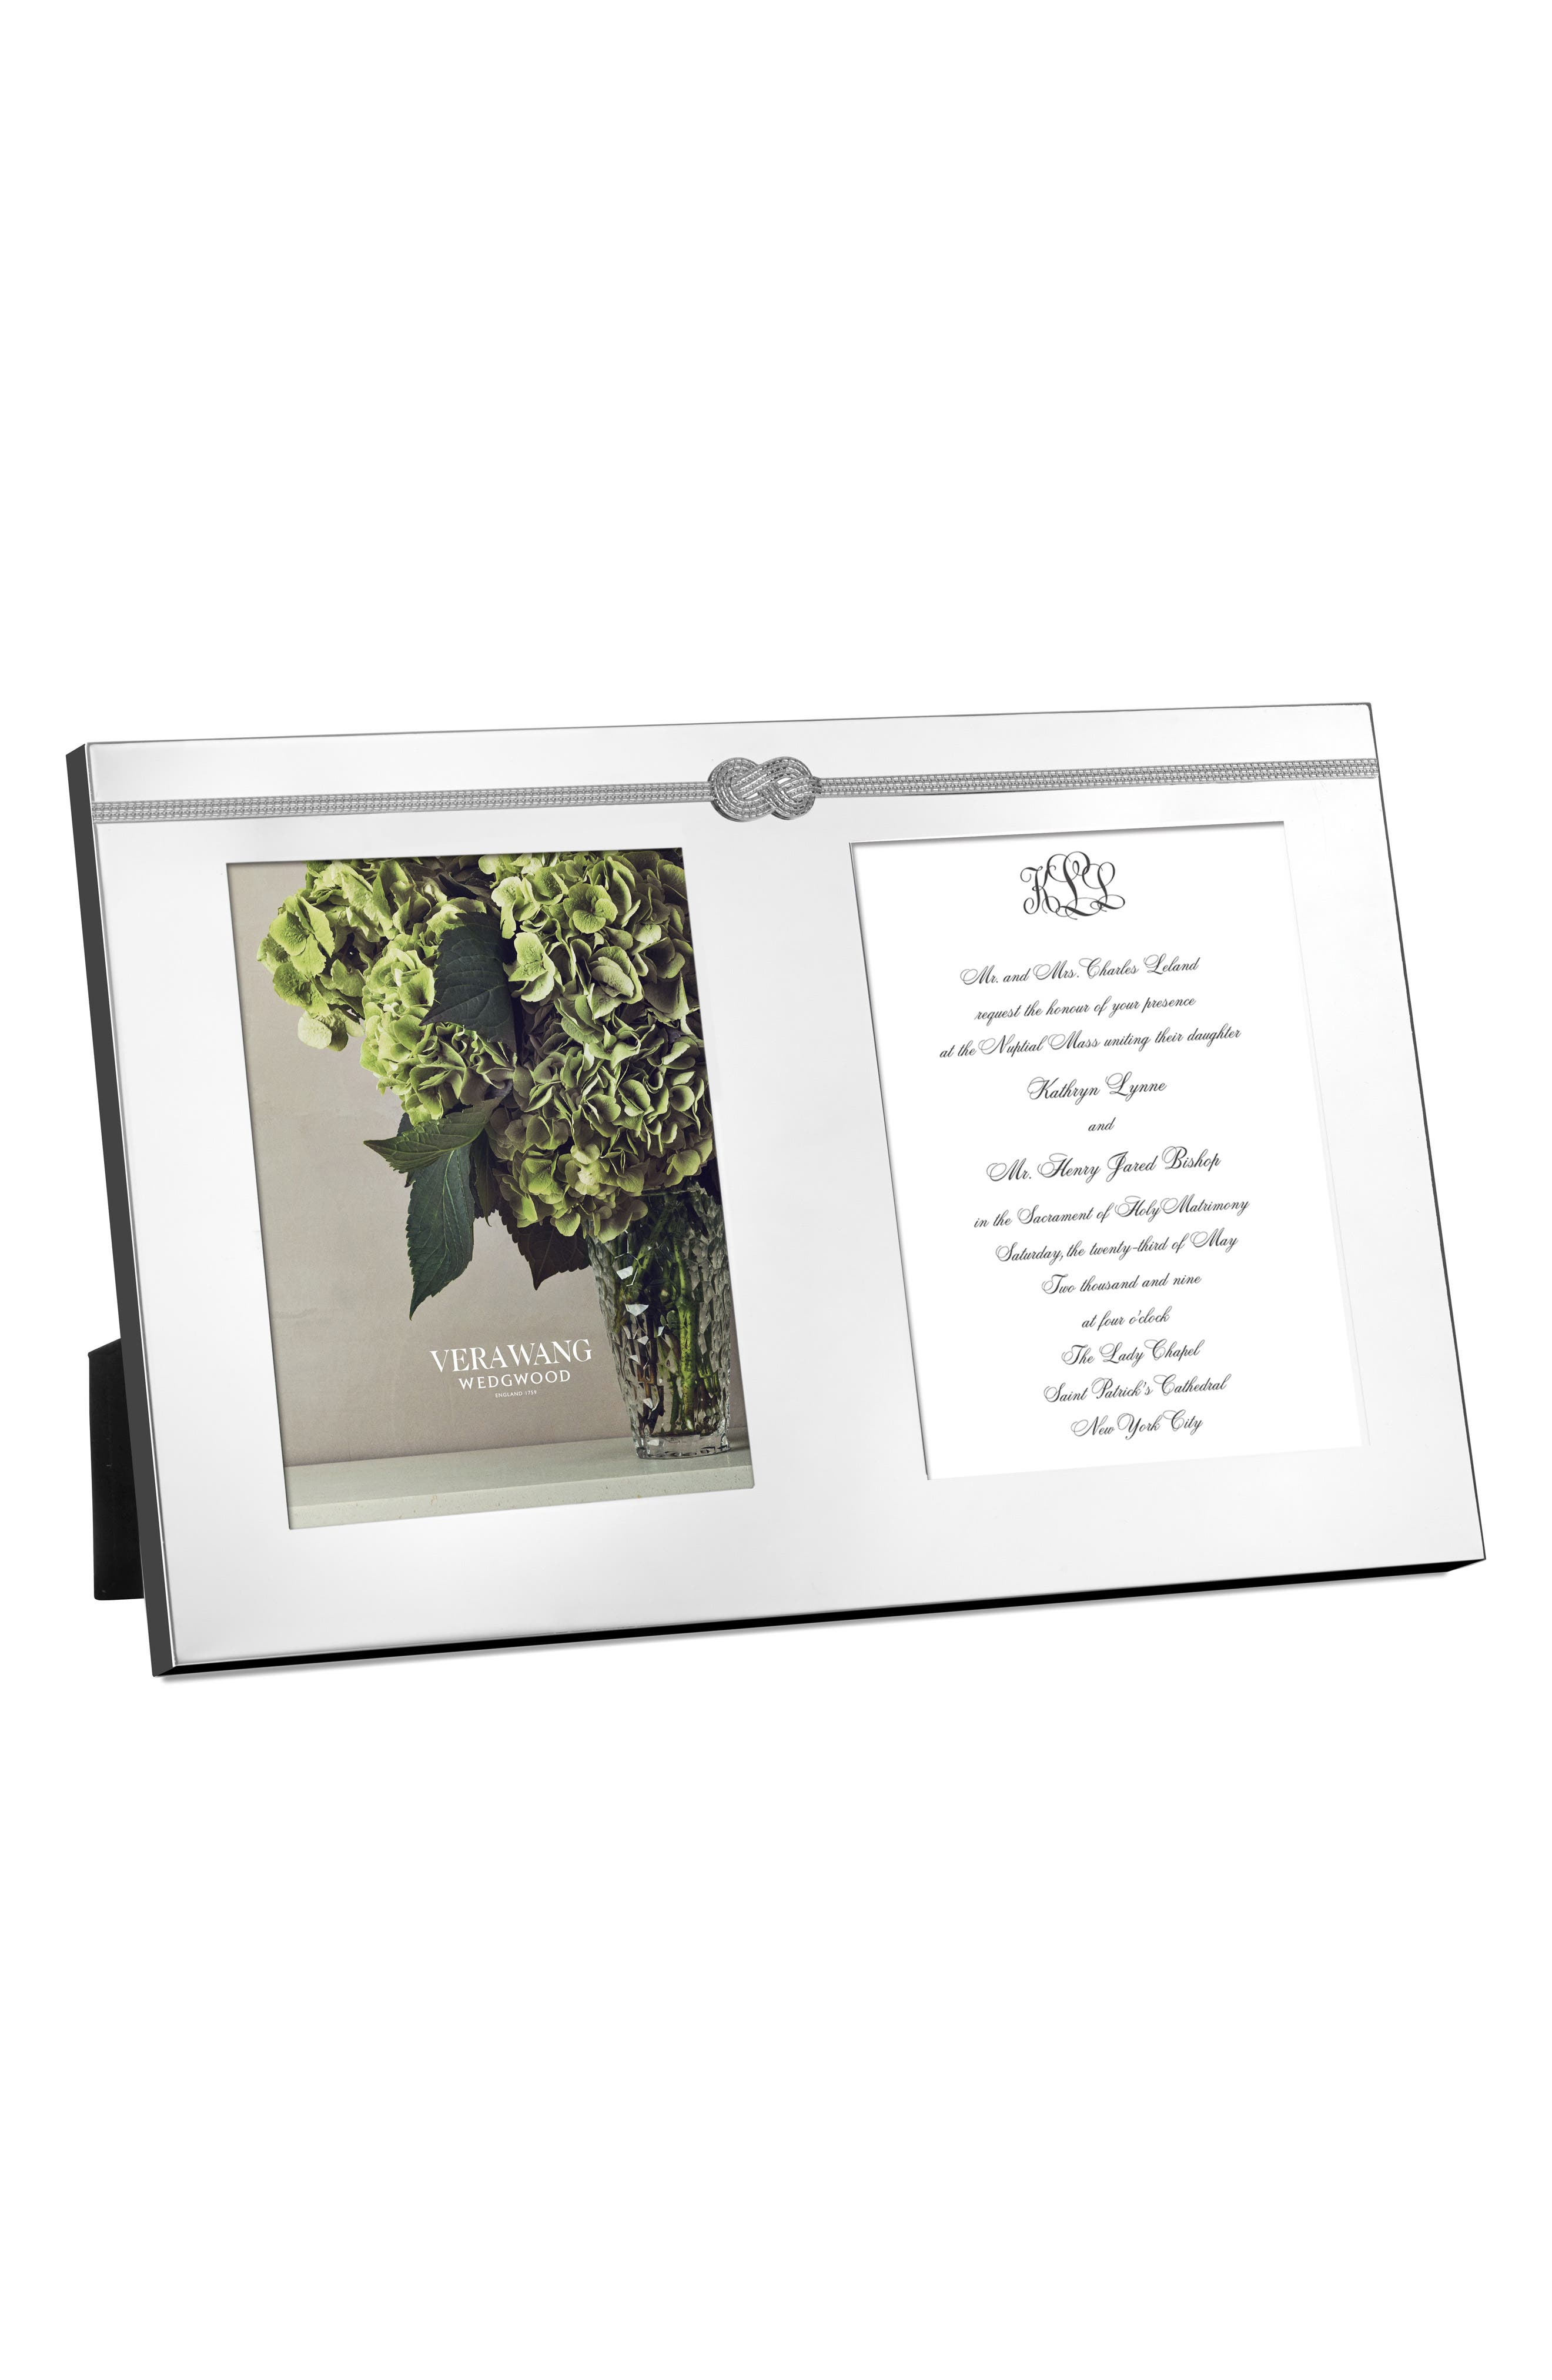 Vera Wang x Wedgwood Infinity Double Invitation Picture Frame